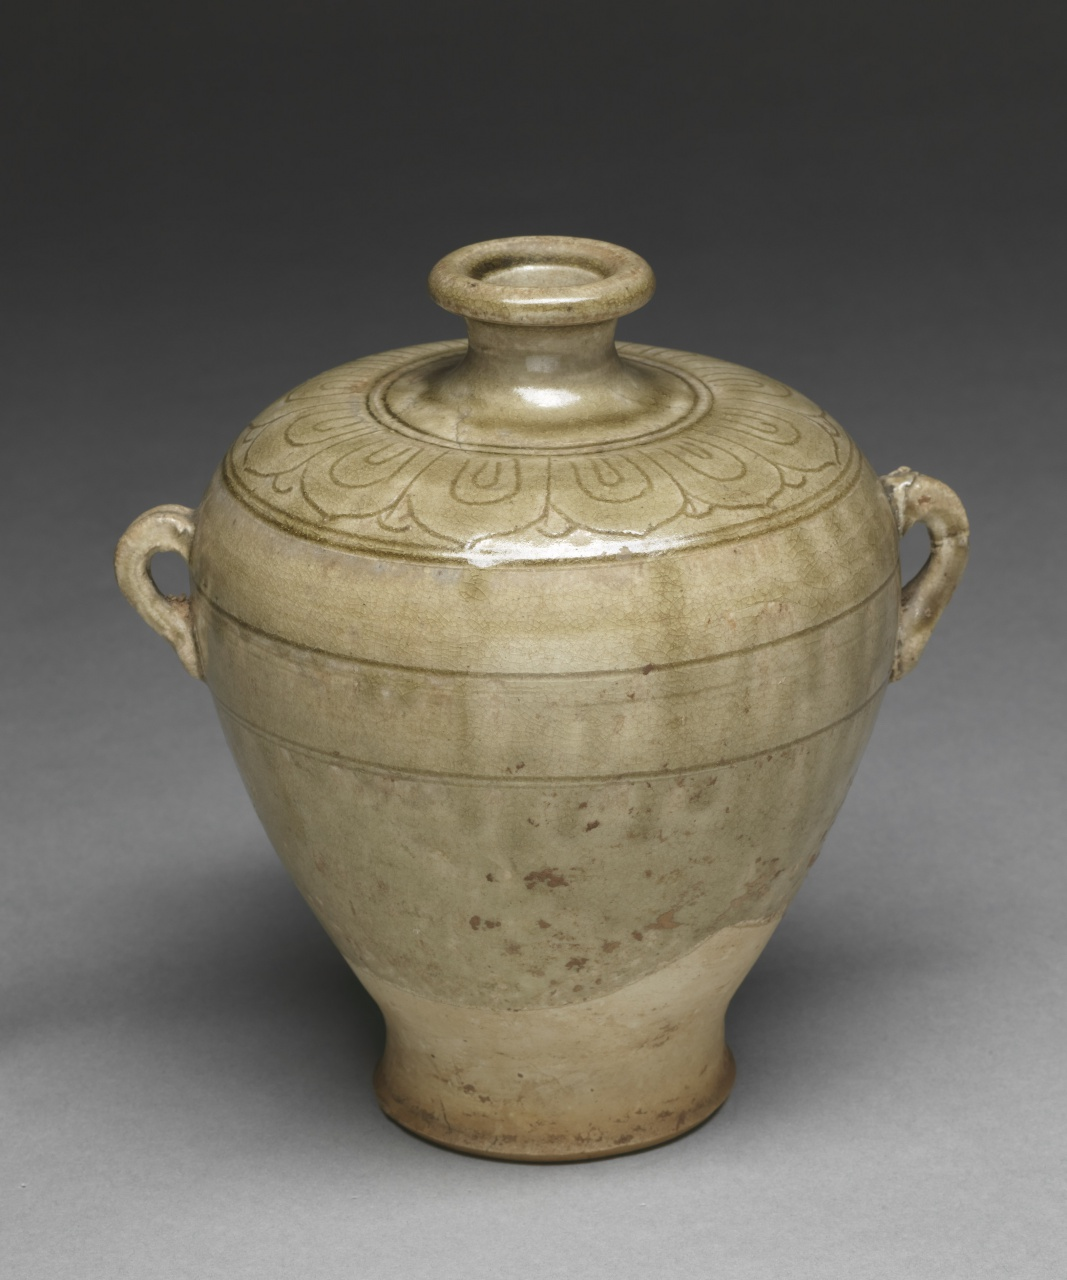 Of Celadon and White - Porcelain Unearthed at the Sui-Tang Period Tombs in Anyang